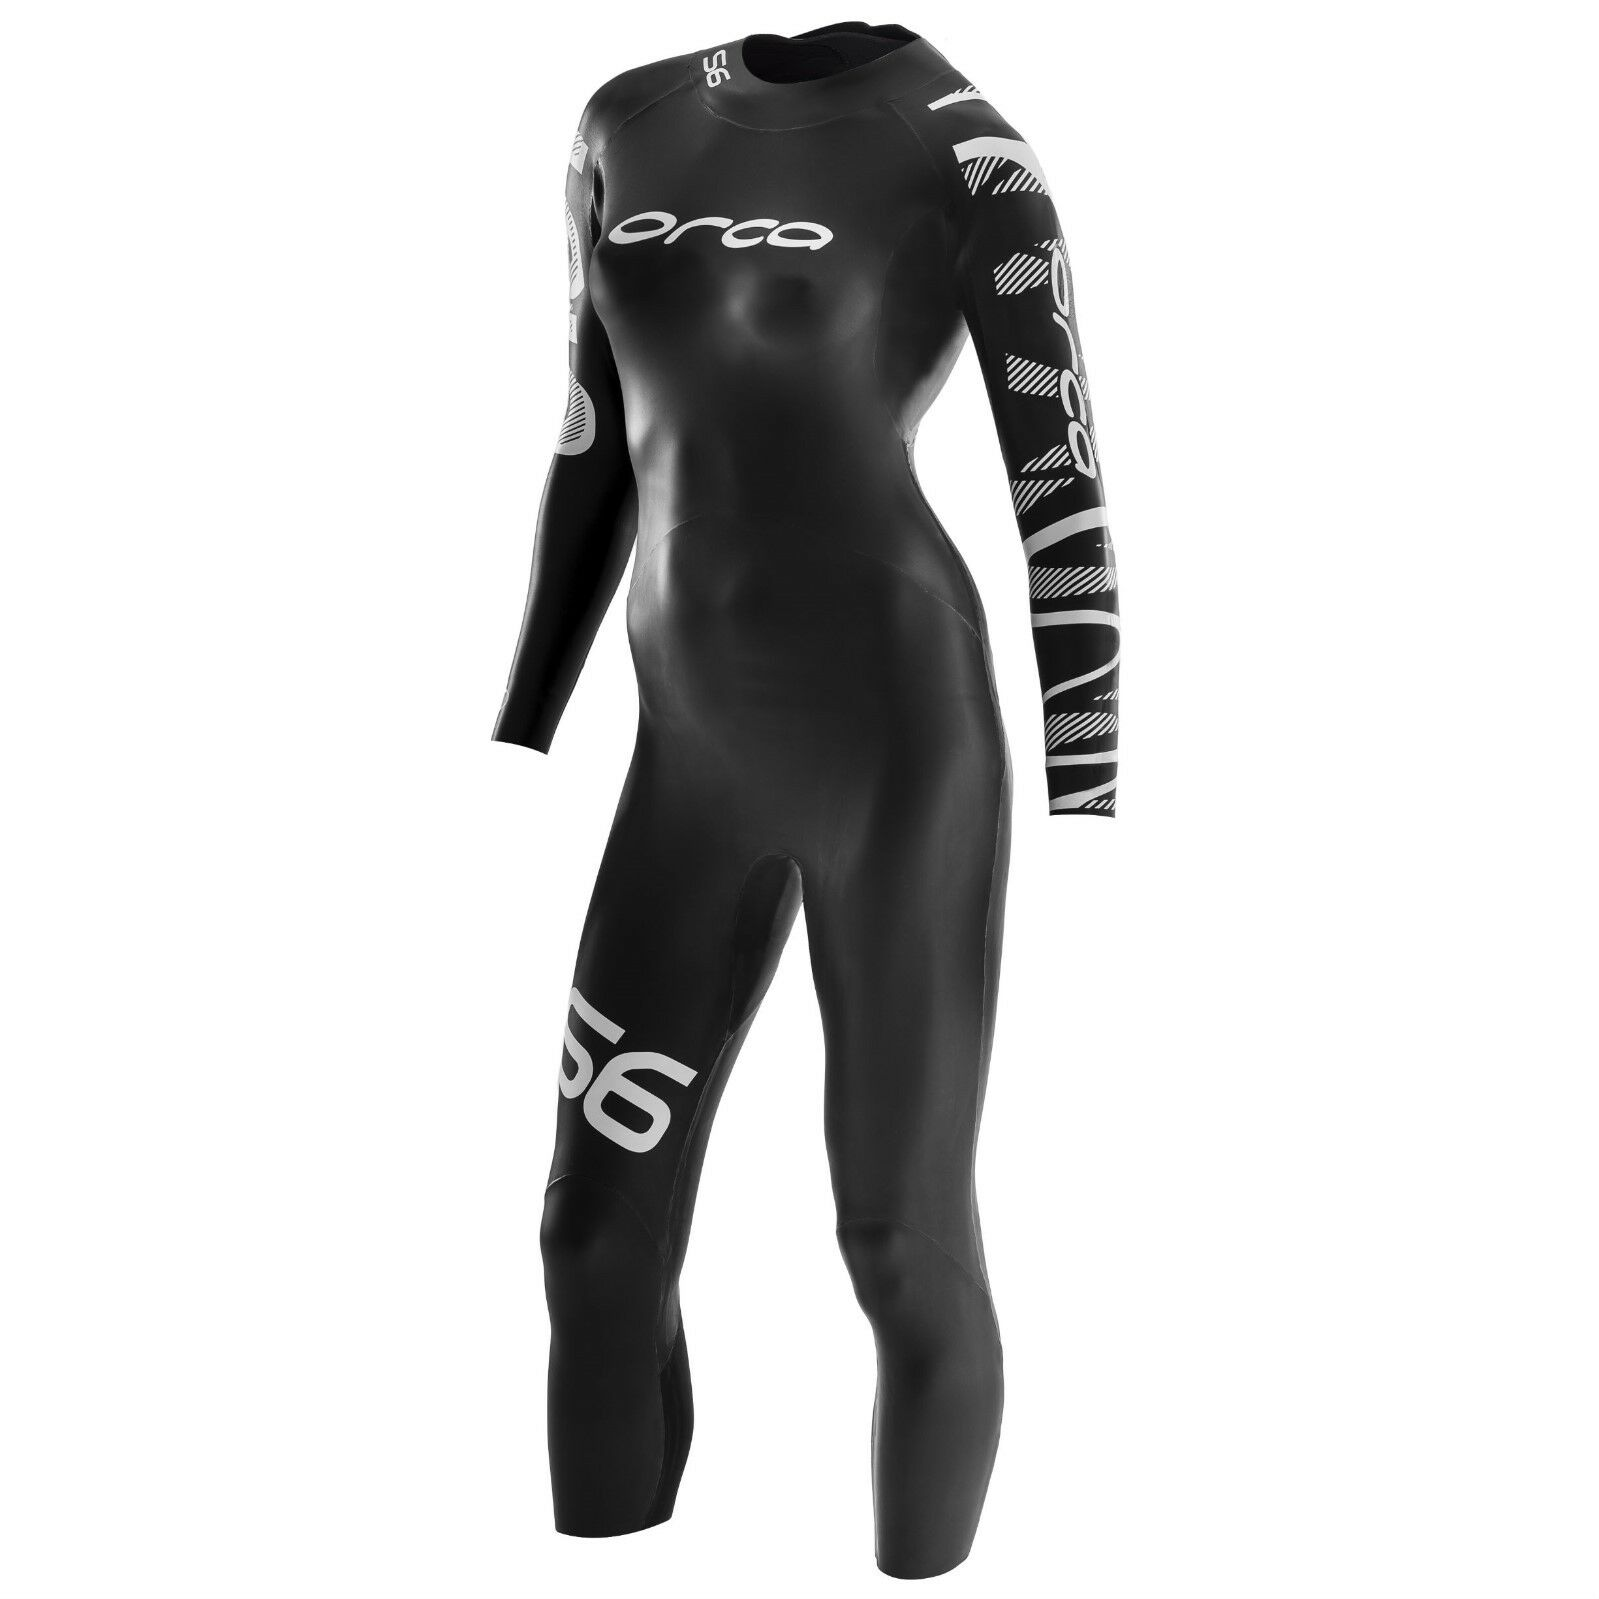 10% off Brand New 2017 Orca Women's S6 Fullsleeve Triathlon Wetsuit